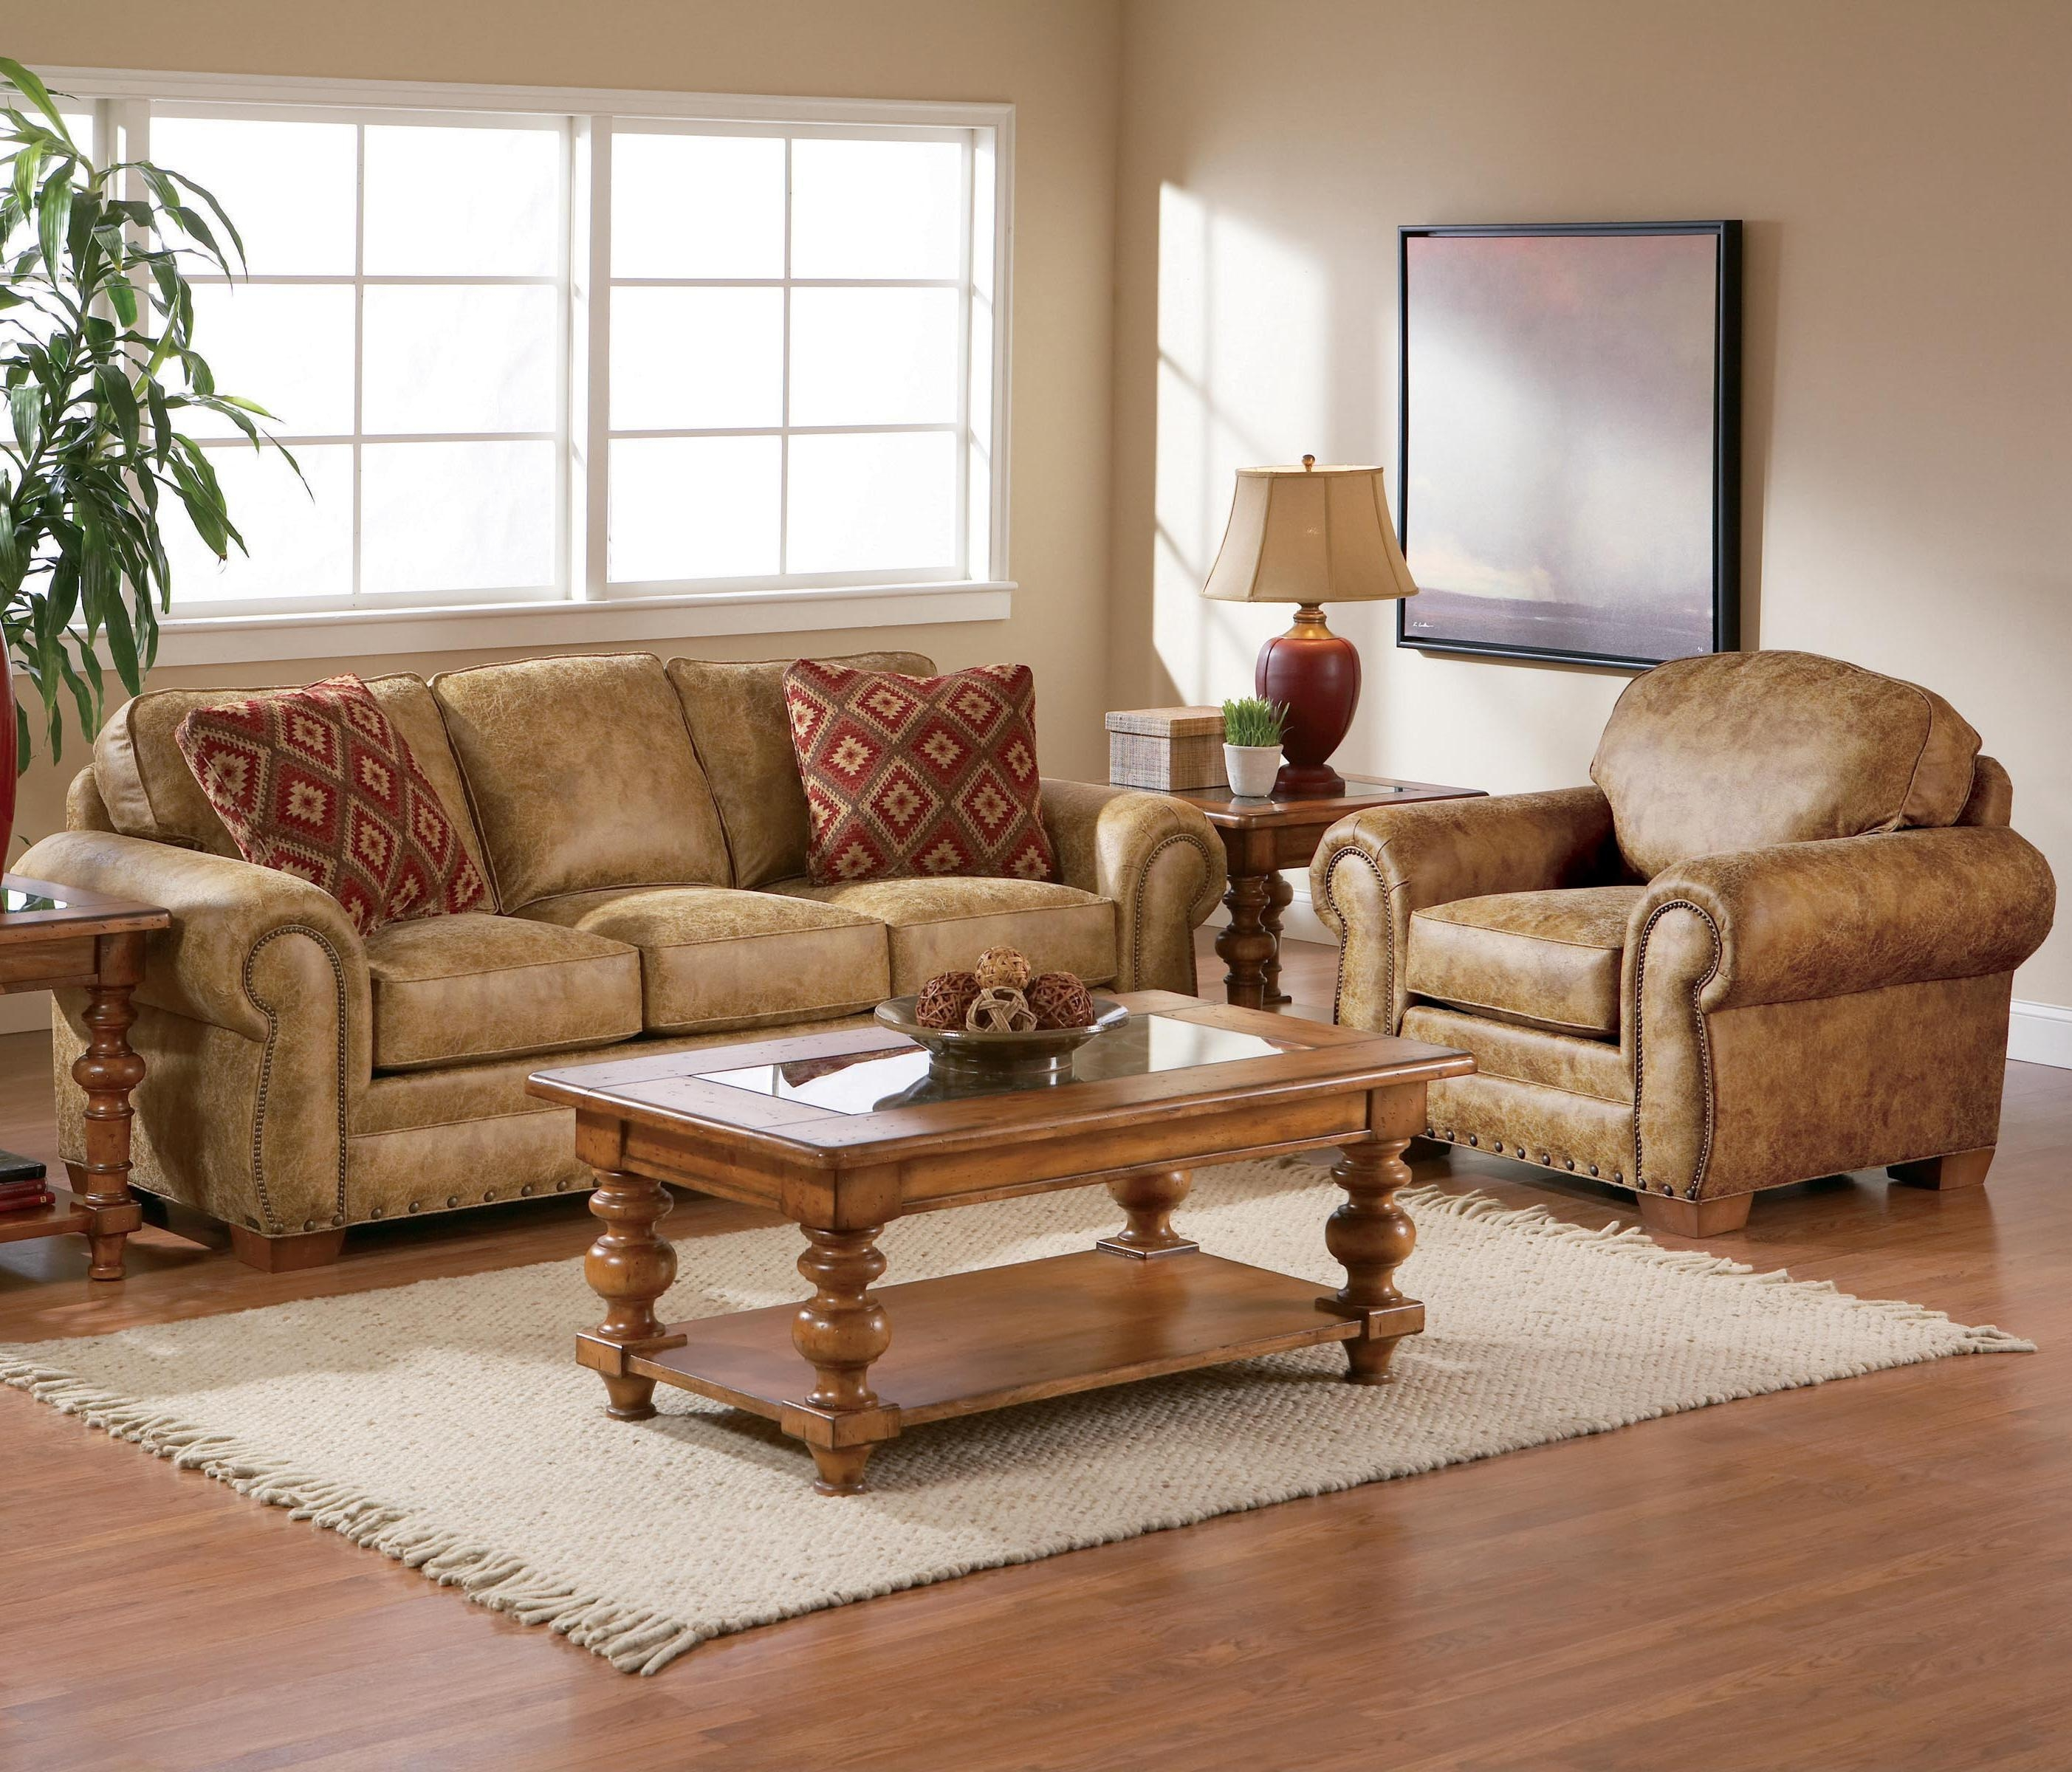 Furniture: Stunning Broyhill Sofas For Enchanting Living Room Pertaining To Broyhill Emily Sofas (Image 18 of 20)